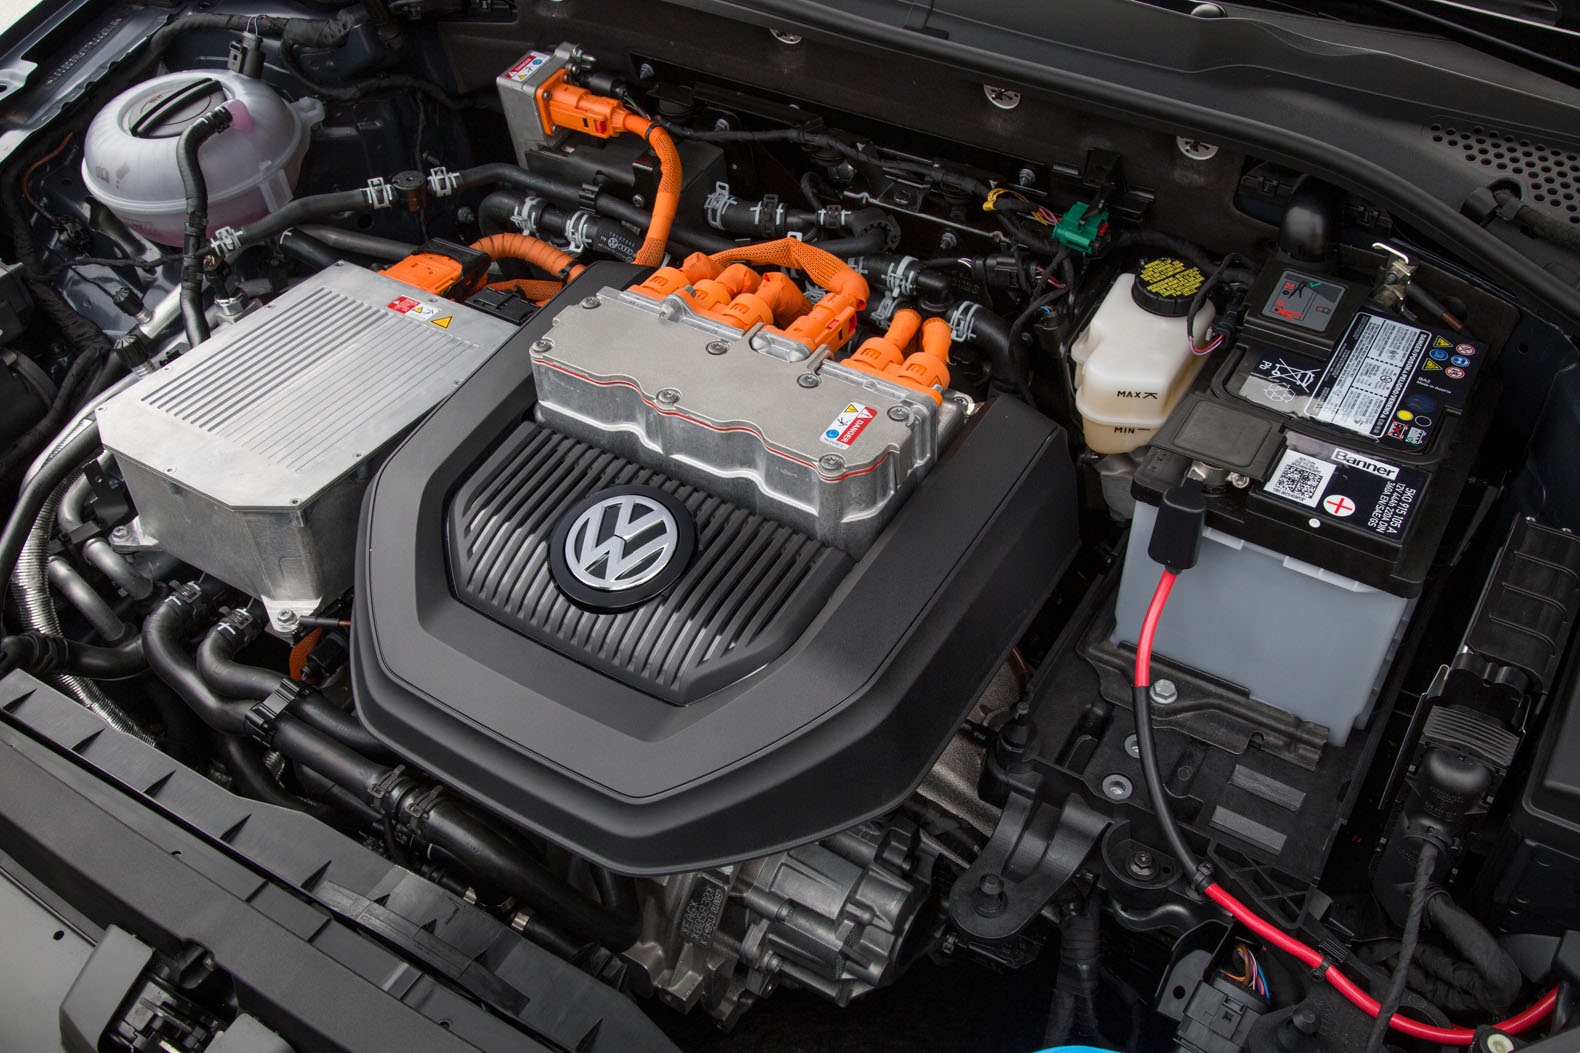 Vw Promises Worlds First Mass Market Electric Car as well Energy storage moreover Pricing And Go To Market Strategy furthermore How Tesla And Vivint Are Taking Different Paths To The One Stop Shop Destin additionally Aluminum Pioneer Takes Steel Path. on pricing strategy tesla